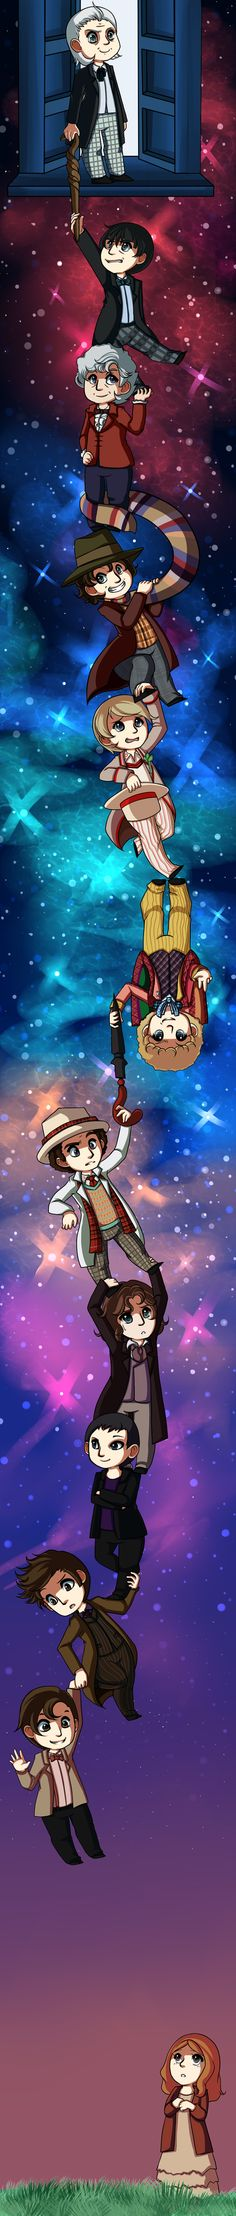 Trust Me: Im the Doctor by Hokutochan15.deviantart.com on @deviantART